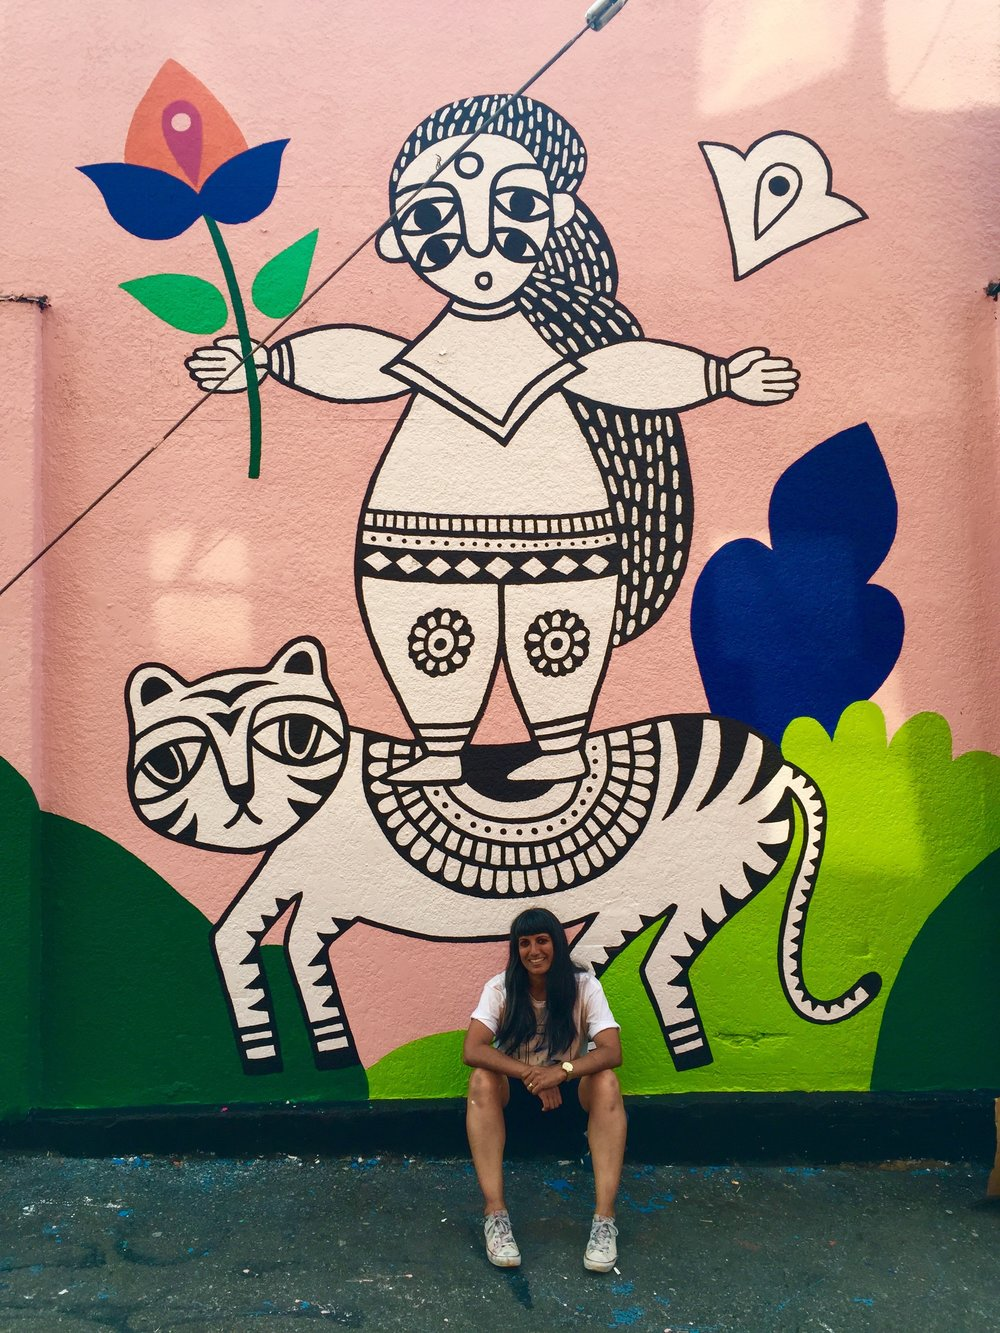 PHOTO CREDIT:  Megan Jenkins    Chats with Sandeep Johal @ Her mural: GIRLS ARE FIERCE LIKE TIGERS    I've lived in Mount Pleasant for over a decade. I currently live a few blocks away from my mural, which is located at a transit hub I use pretty consistently. To see it on an almost daily basis is pretty special.  It was important to me that the mural had a South Asian aesthetic to reflect my heritage. There are so few South Asian artists here (for many reasons, but the main one being artists aren't encouraged in my culture) and I wanted it to inspire other South Asians who are aspiring to work in the arts.The lady on the tiger originally came from a drawing I did at a residency at the Anvil Centre in New West last year.   Favourite things about painting the mural?   One of the best parts of painting this mural was meeting so many South Asians who came by to say hi and support me. I felt honoured to be painting a mural for VMF and scared, nervous about such a big wall, especially since it was my first outdoor mural. But, I did it, with the assistance from friends, and now all I want to do is paint murals all over the place — walls, ceilings, floors, stairs, wherever. I feel so much more confident. The press I got during the mural fest has also led to different opportunities and helped me propel my career forward, which I'm eternally thankful for.  The fact that VMF exists is a win. Supporting local talents, exposing the larger community to artists, giving everyone access to public art, and beautifying otherwise bland or under-utilized spaces is only some of what VMF is doing to make Vancity better. The fact that VMF is working towards 50% of the artists being female, supporting Indigenous artists, and first time muralists is pretty awesome. Oh, and the artists get paid! :)